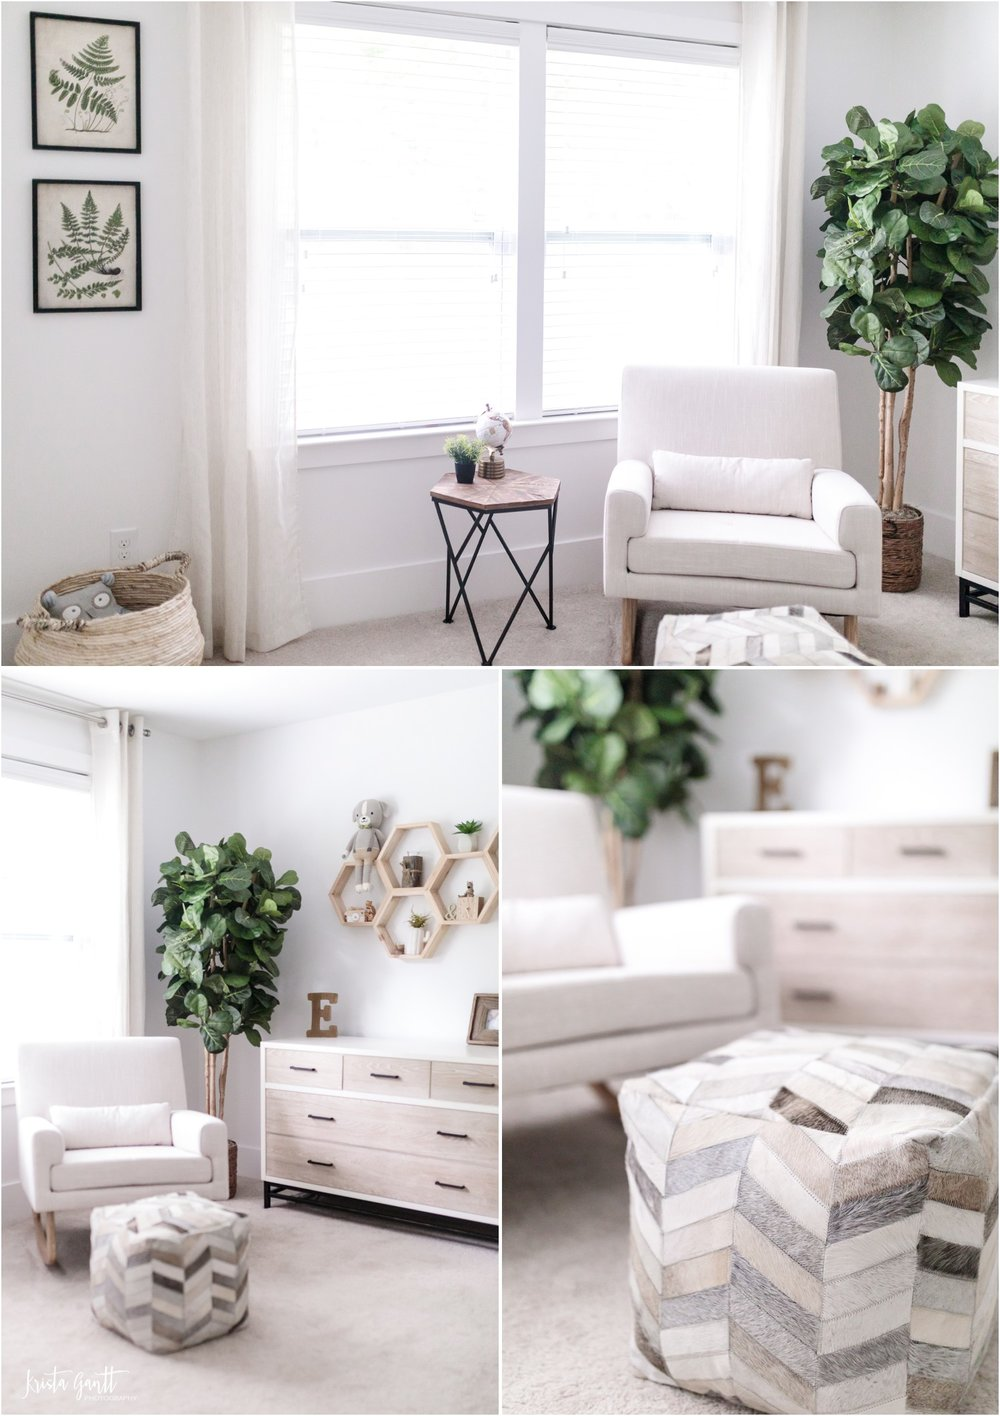 DRESSER: Buy Buy Baby | ROCKER: Amazon | COWHIDE OTTOMAN: World Market | FAUX FIDDLE LEAF FIG: Amazon